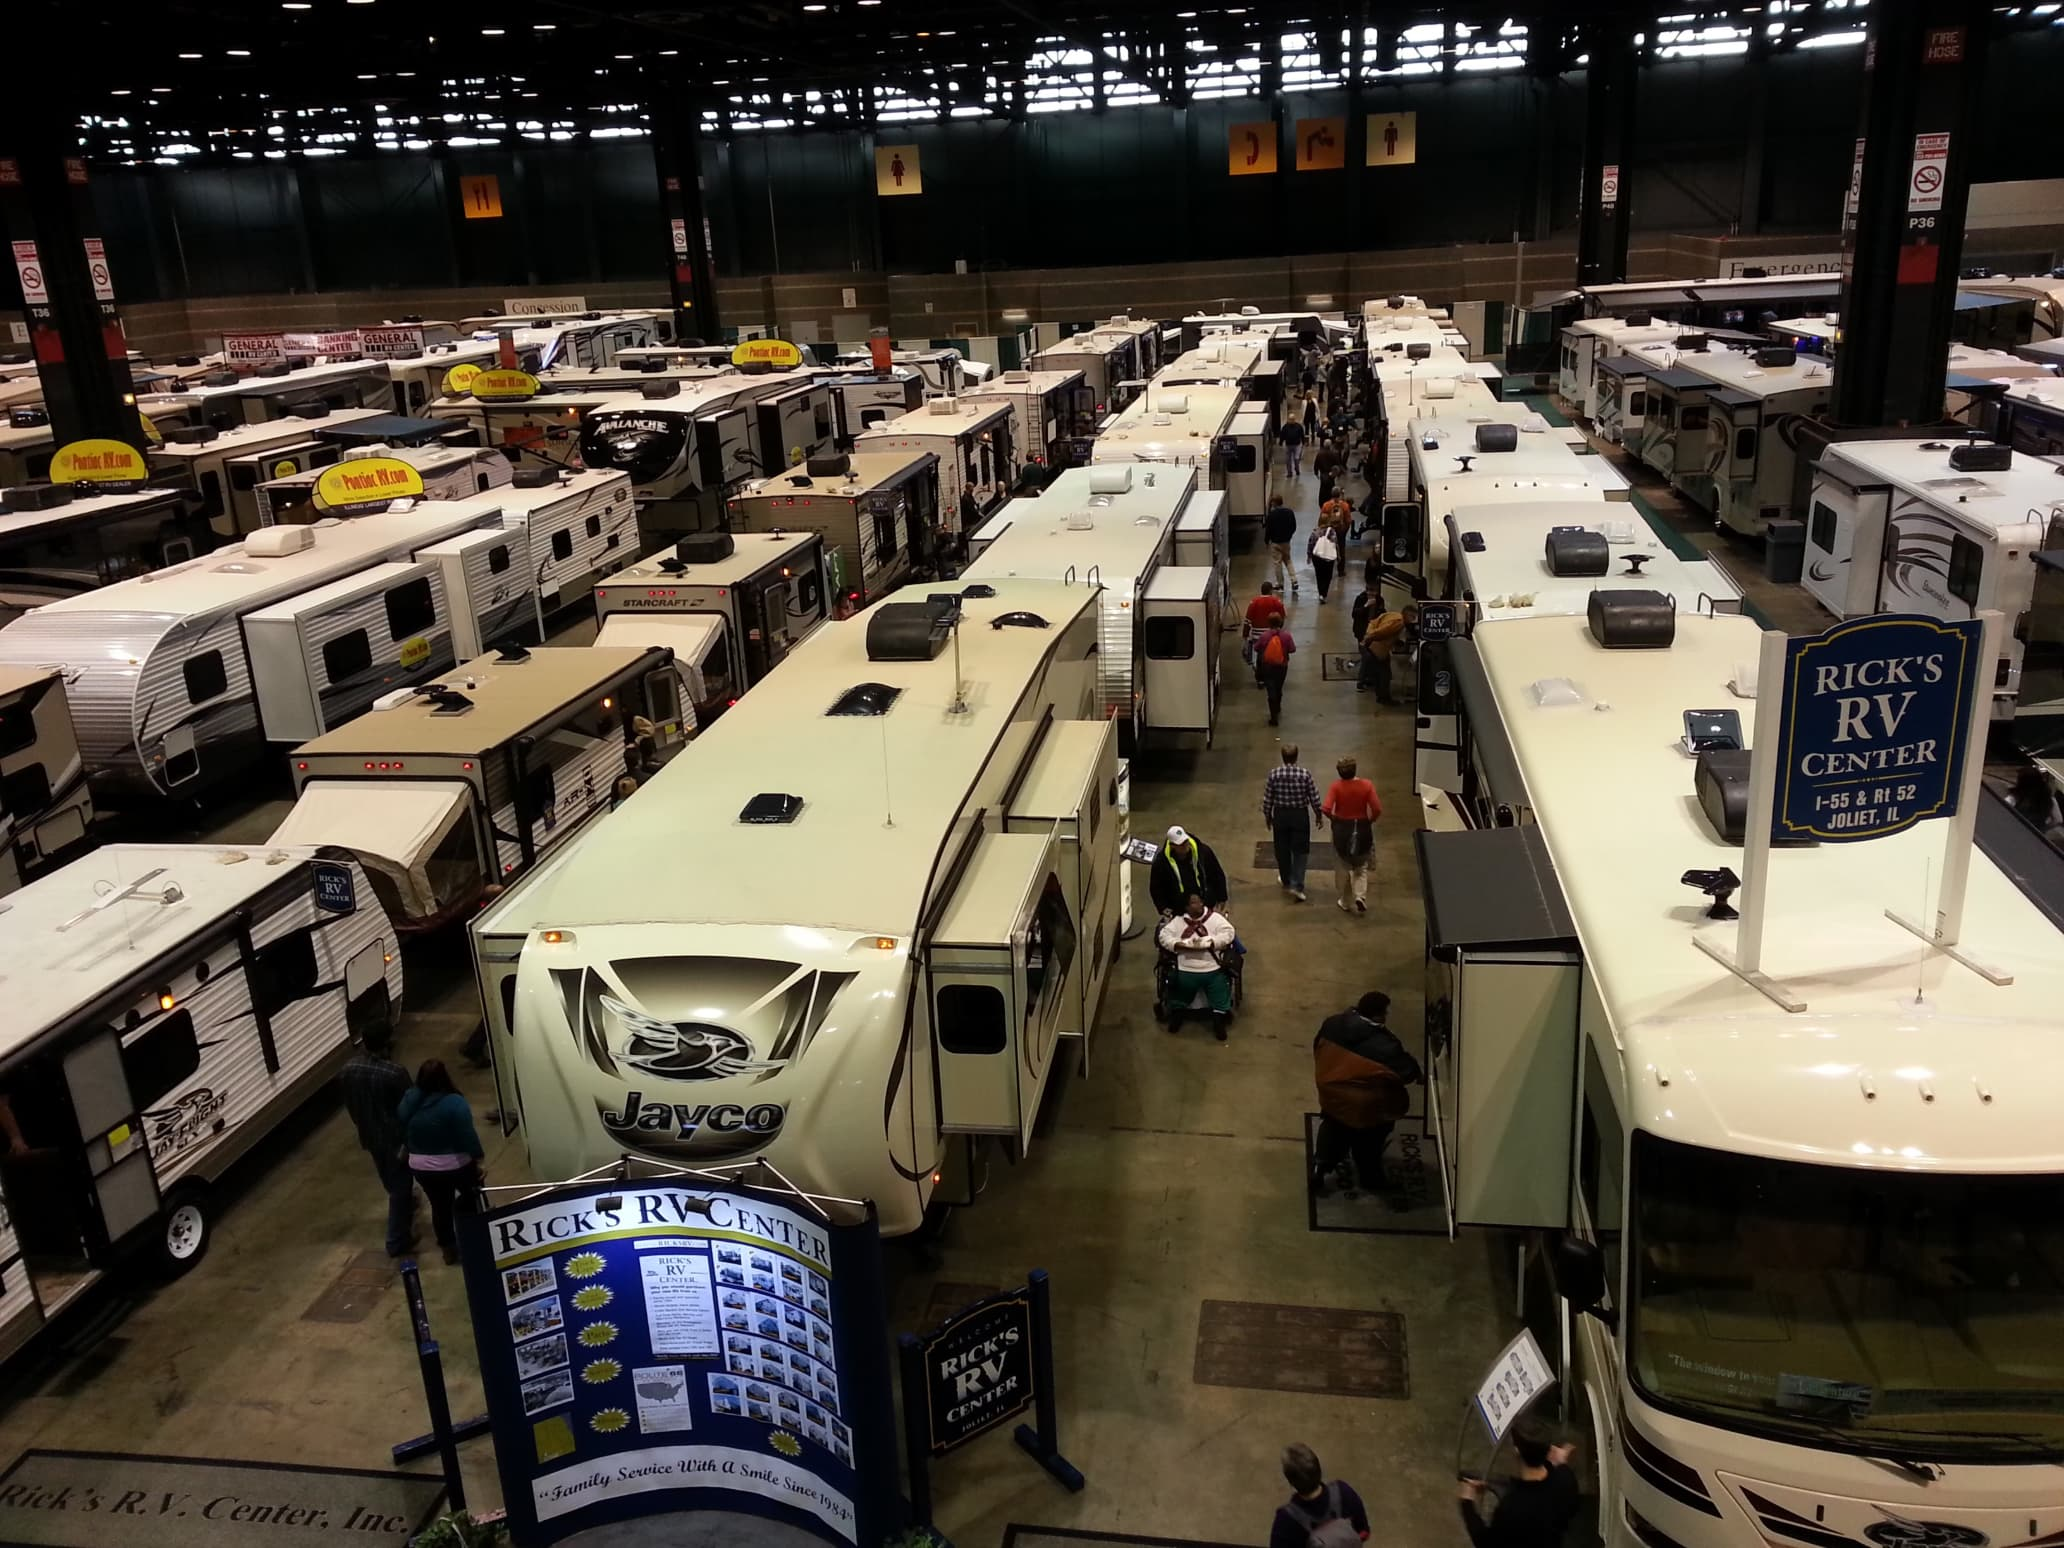 RVs lined up for sale at a trade show